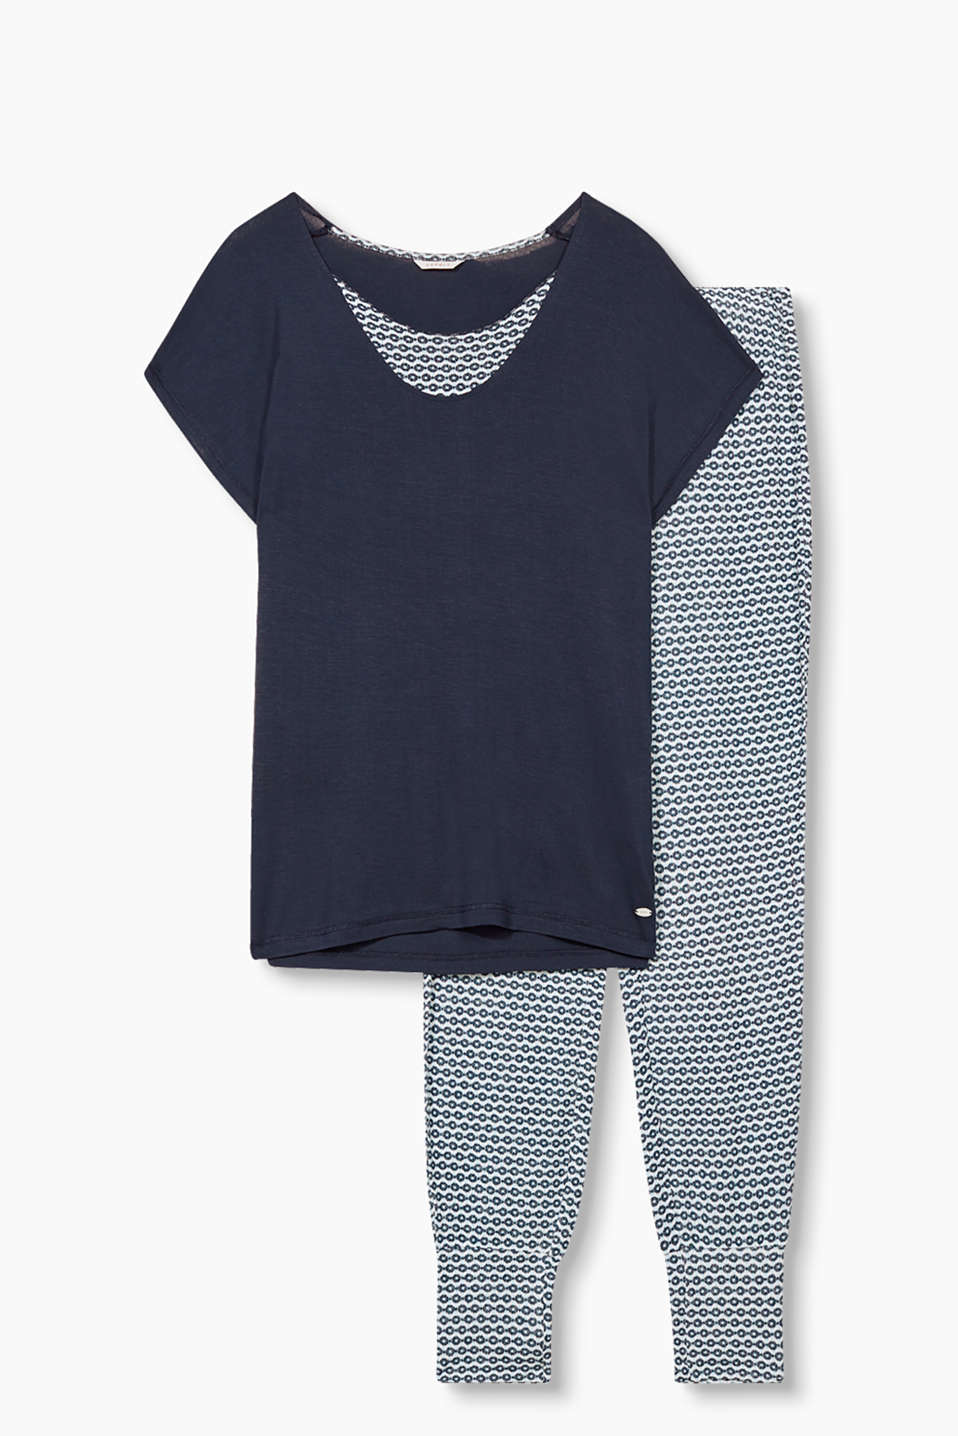 Pyjama set with a plain top and bottoms with an all-over print, in jersey